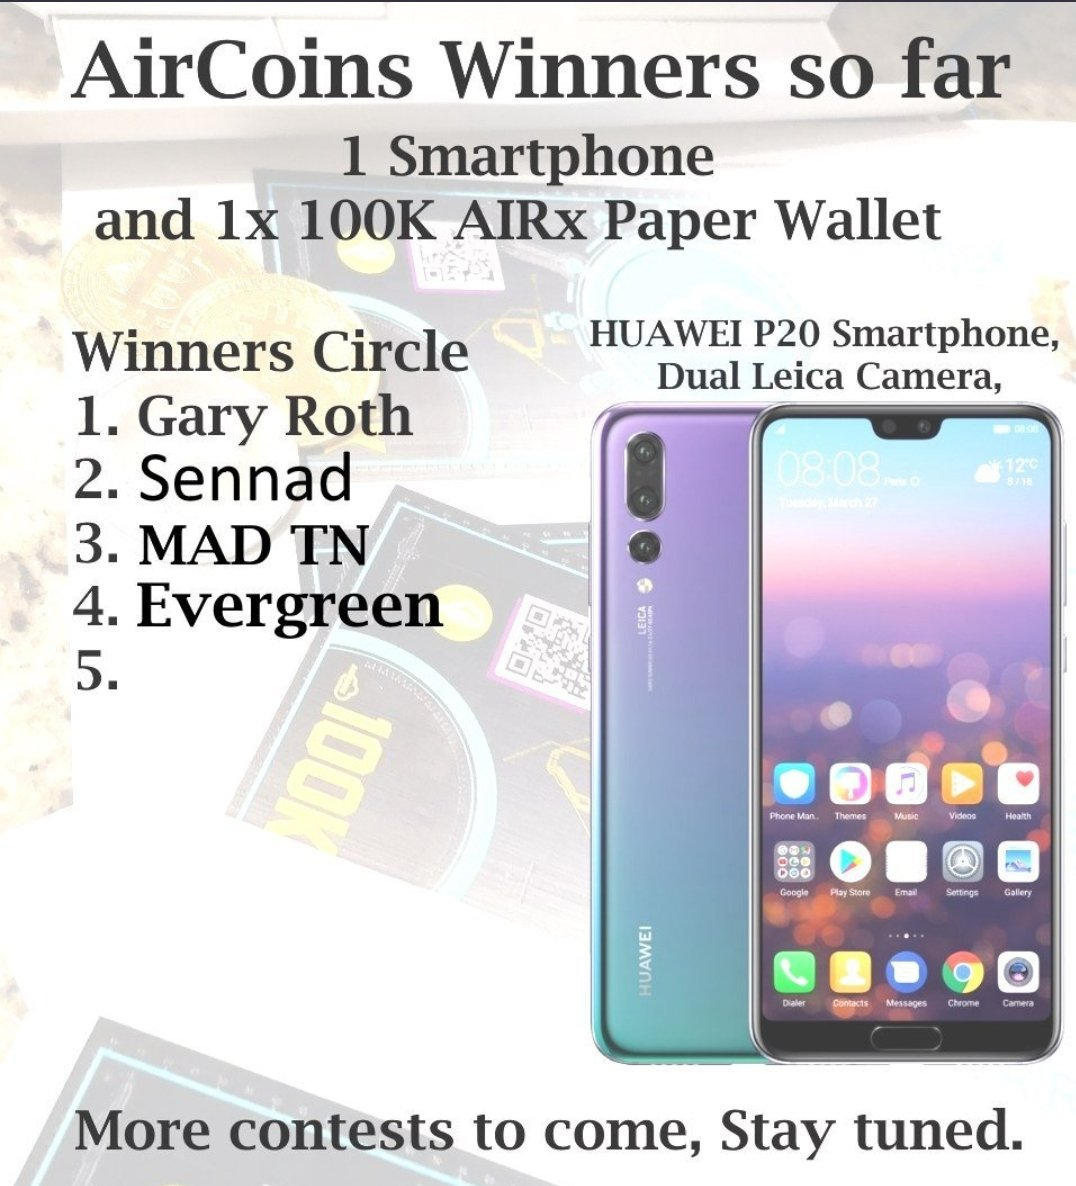 Well done to the WINNERS  of the Big #aircoins meme competition   They won   Android smart phone  100k #aircoins crypto wallet   &#39; You have to be in it to win it &#39;   Download the App now ! #cryptocurrency #prizes #Android9 #giveaway #airdrop #meme #contest #ausbiz<br>http://pic.twitter.com/4YJLxpSQ3K